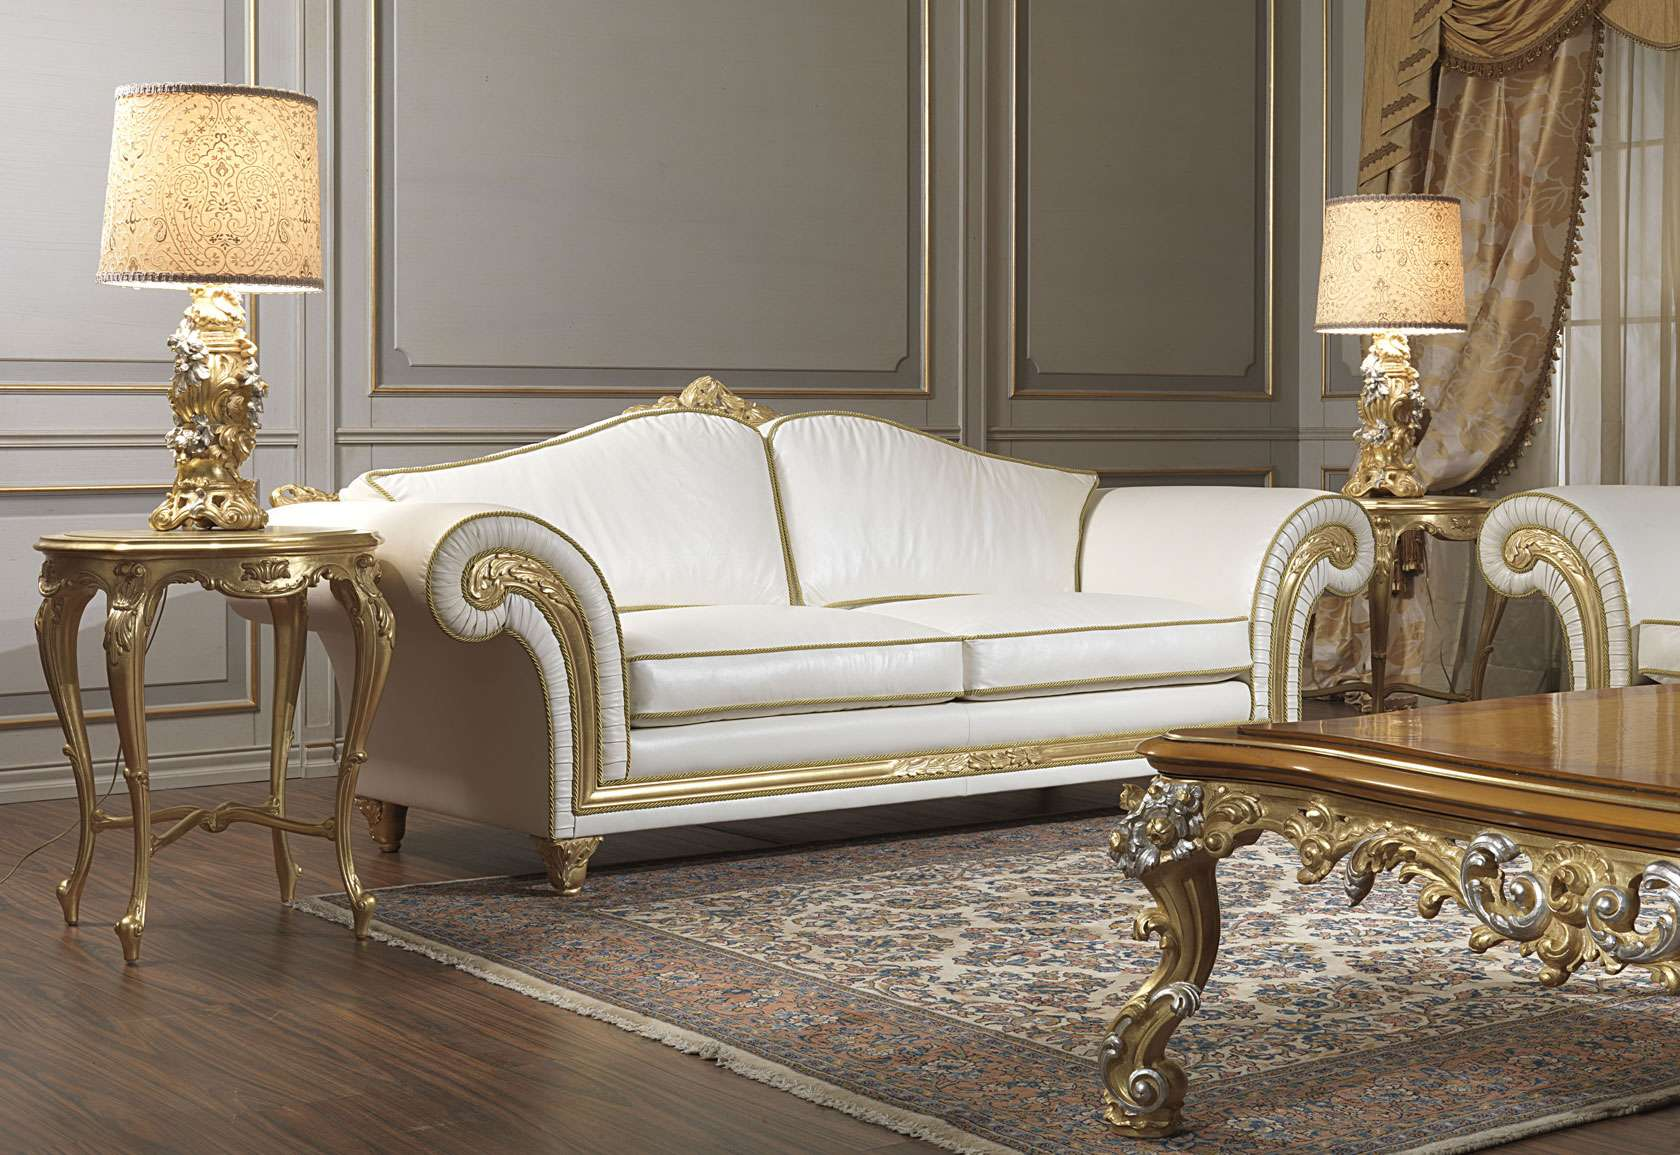 Exceptionnel Classic Sofa Imperial In White Leather